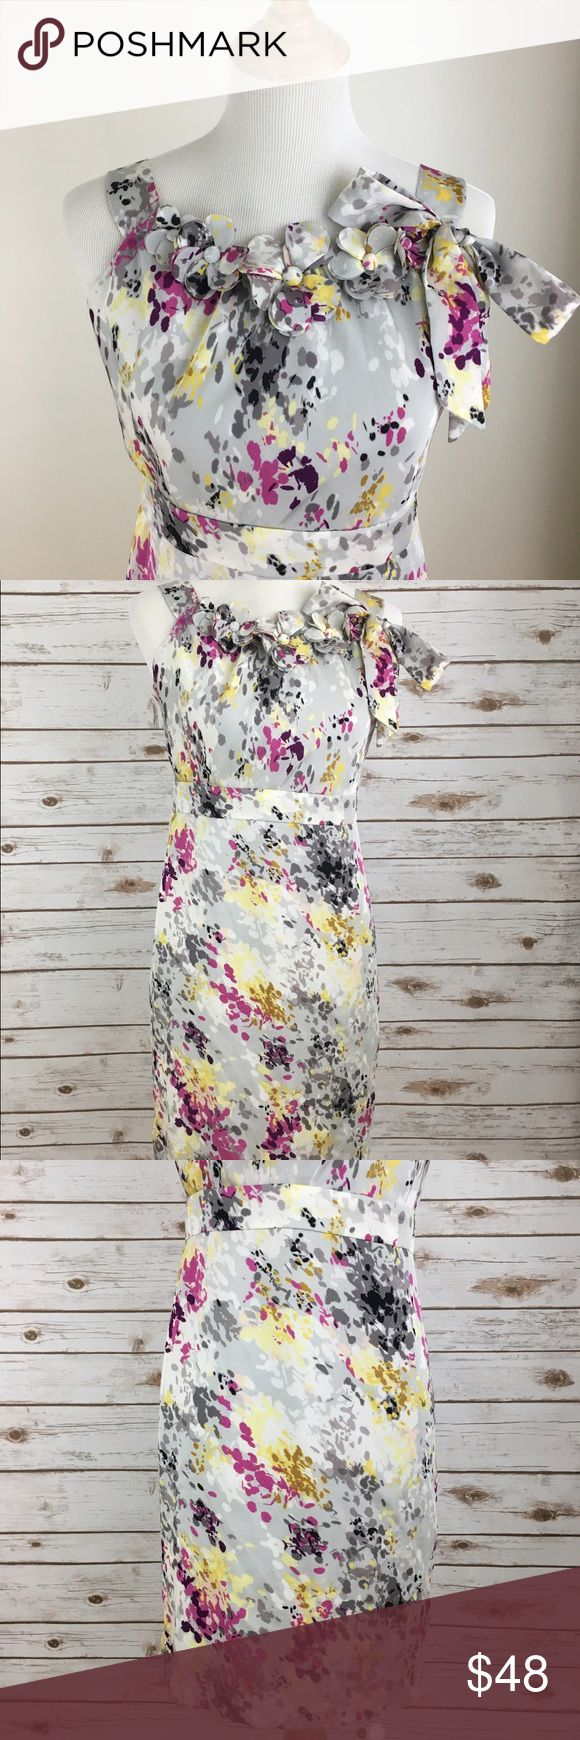 "Ann Taylor Loft Floral Summer Dress Ann Taylor Loft sleeveless dress. Beautiful dress with fabric flowers at neckline and bow on left side strap. Defined waist. Fully lined. Zip back. Size 6. Gently used, no flaws. Please see pictures for details.  armpit to armpit - 17"" shoulder to waist - 14: waist to hem - 20"" Ann Taylor Factory Dresses"